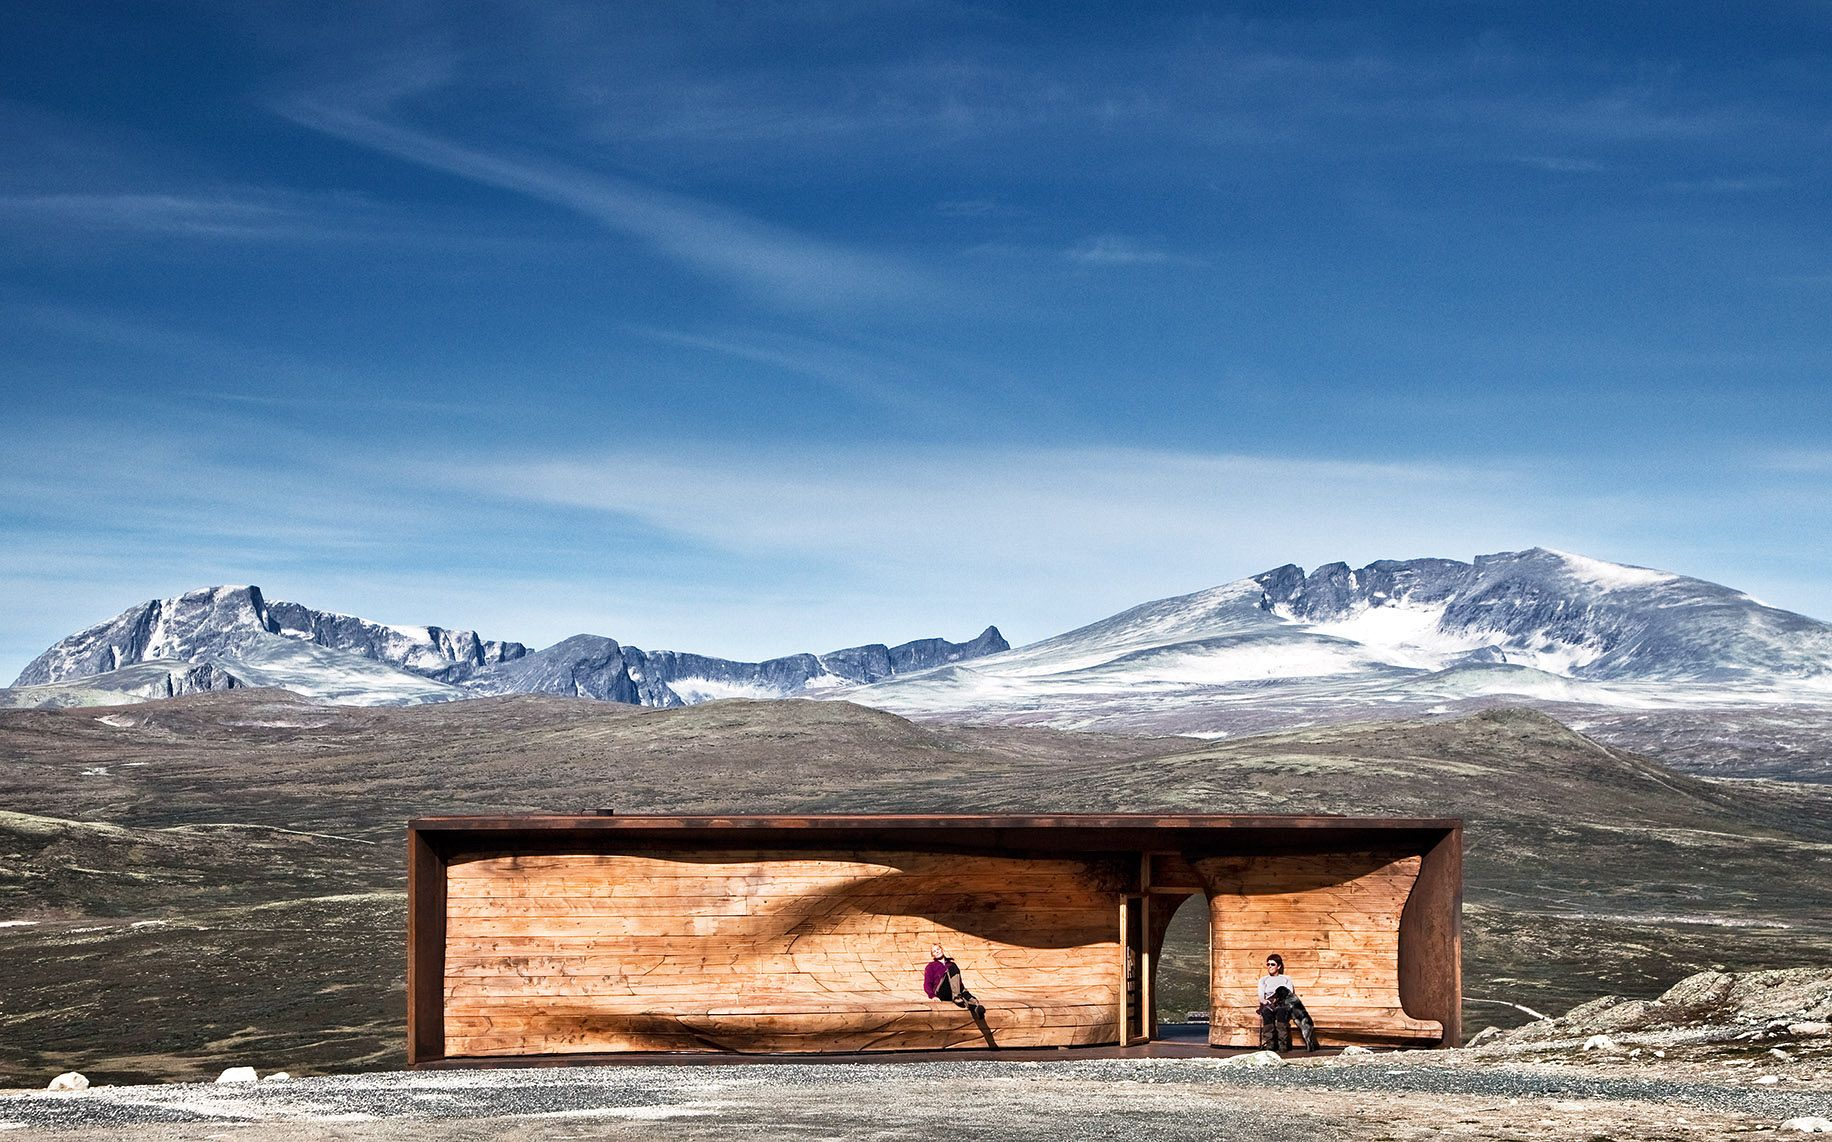 Tverrfjellet reindeer Pavilion, Dovre. Snøhetta, 2011. An inspiration for the forms of Maggie's Aberdeen. Photo: Ketil Jacobsen.